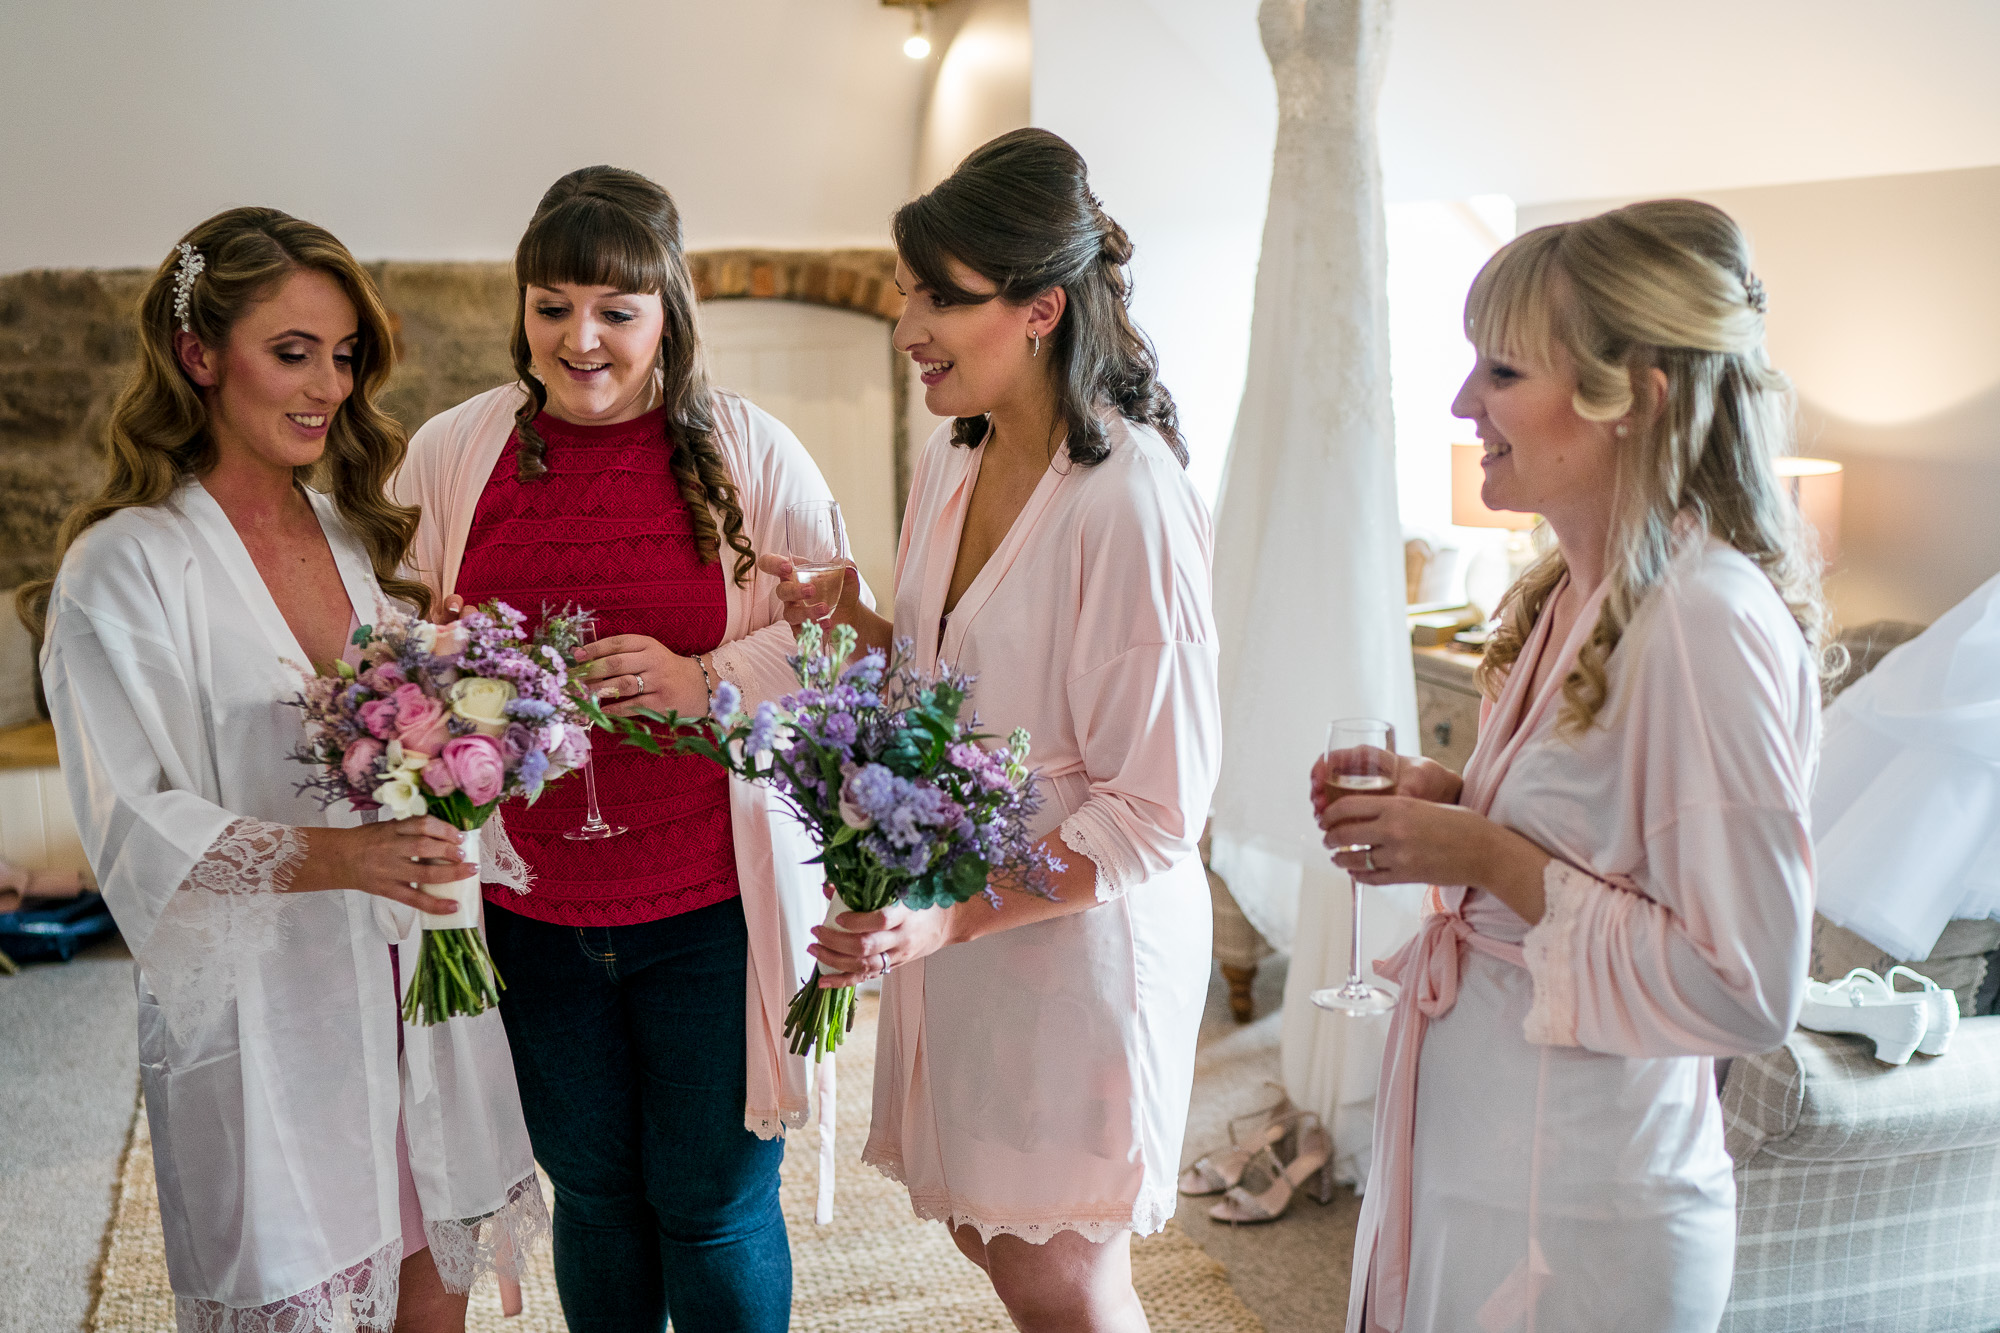 Tower Hill BArn Wedding Photographer based in north west england (10 of 35).jpg